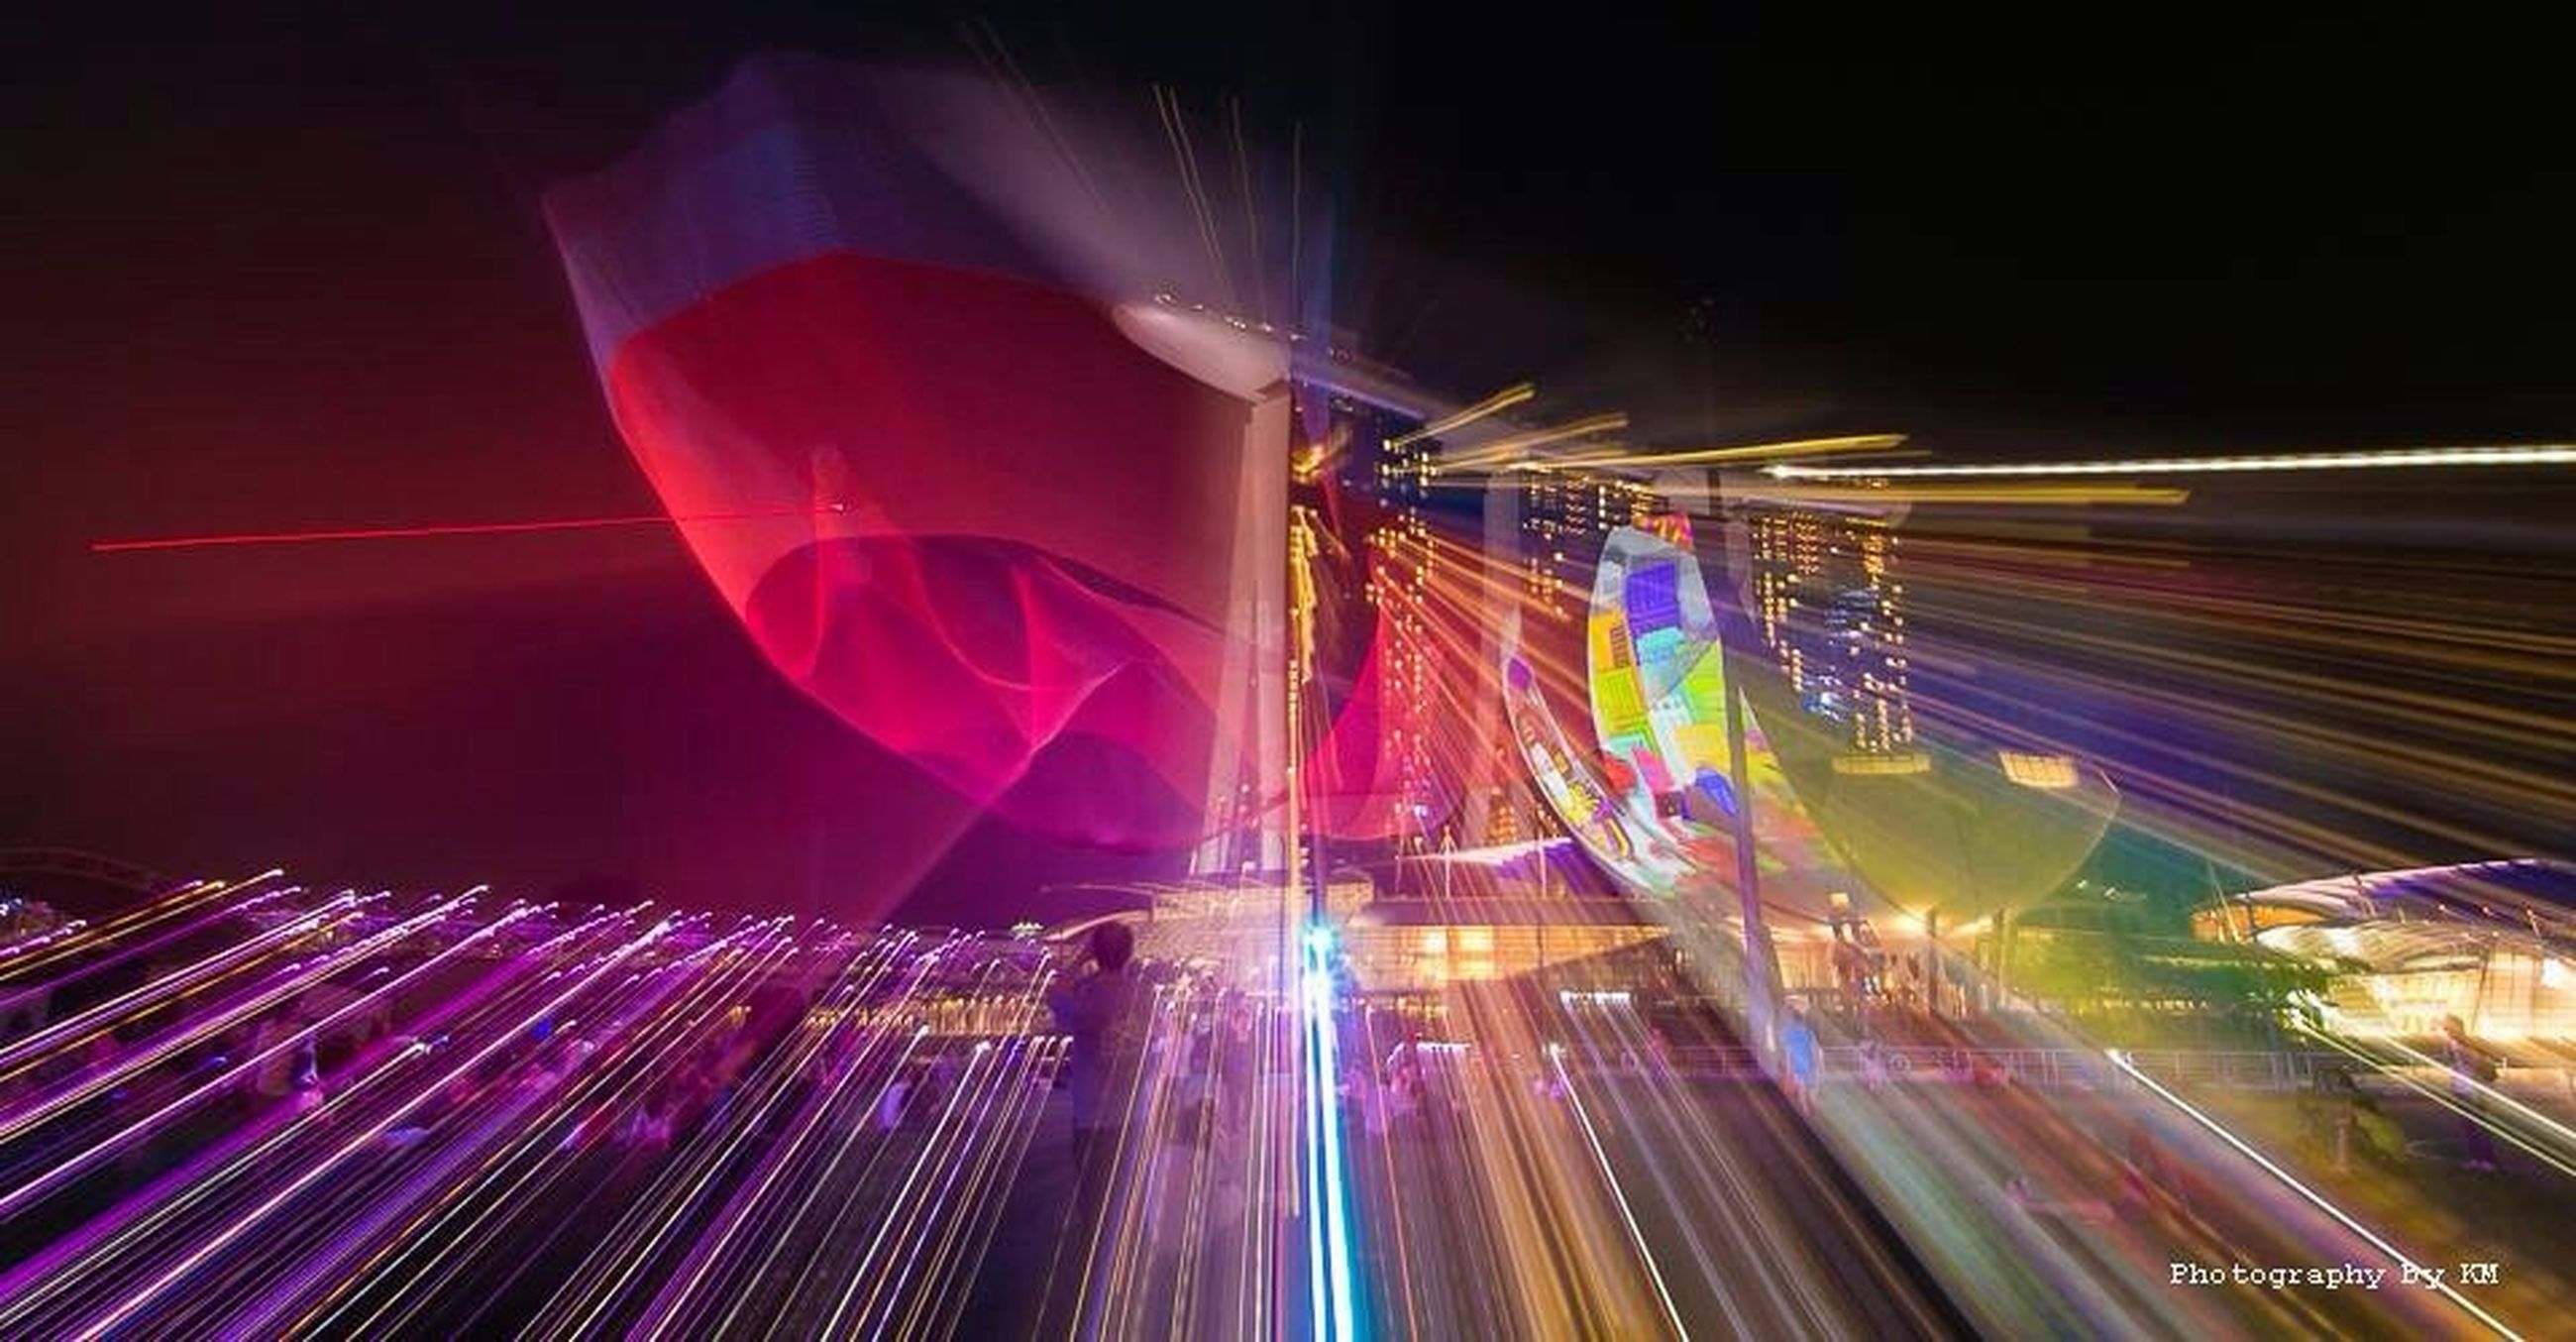 illuminated, night, long exposure, light trail, speed, motion, blurred motion, transportation, multi colored, city, lighting equipment, traffic, road, city life, street, on the move, architecture, light - natural phenomenon, built structure, tail light